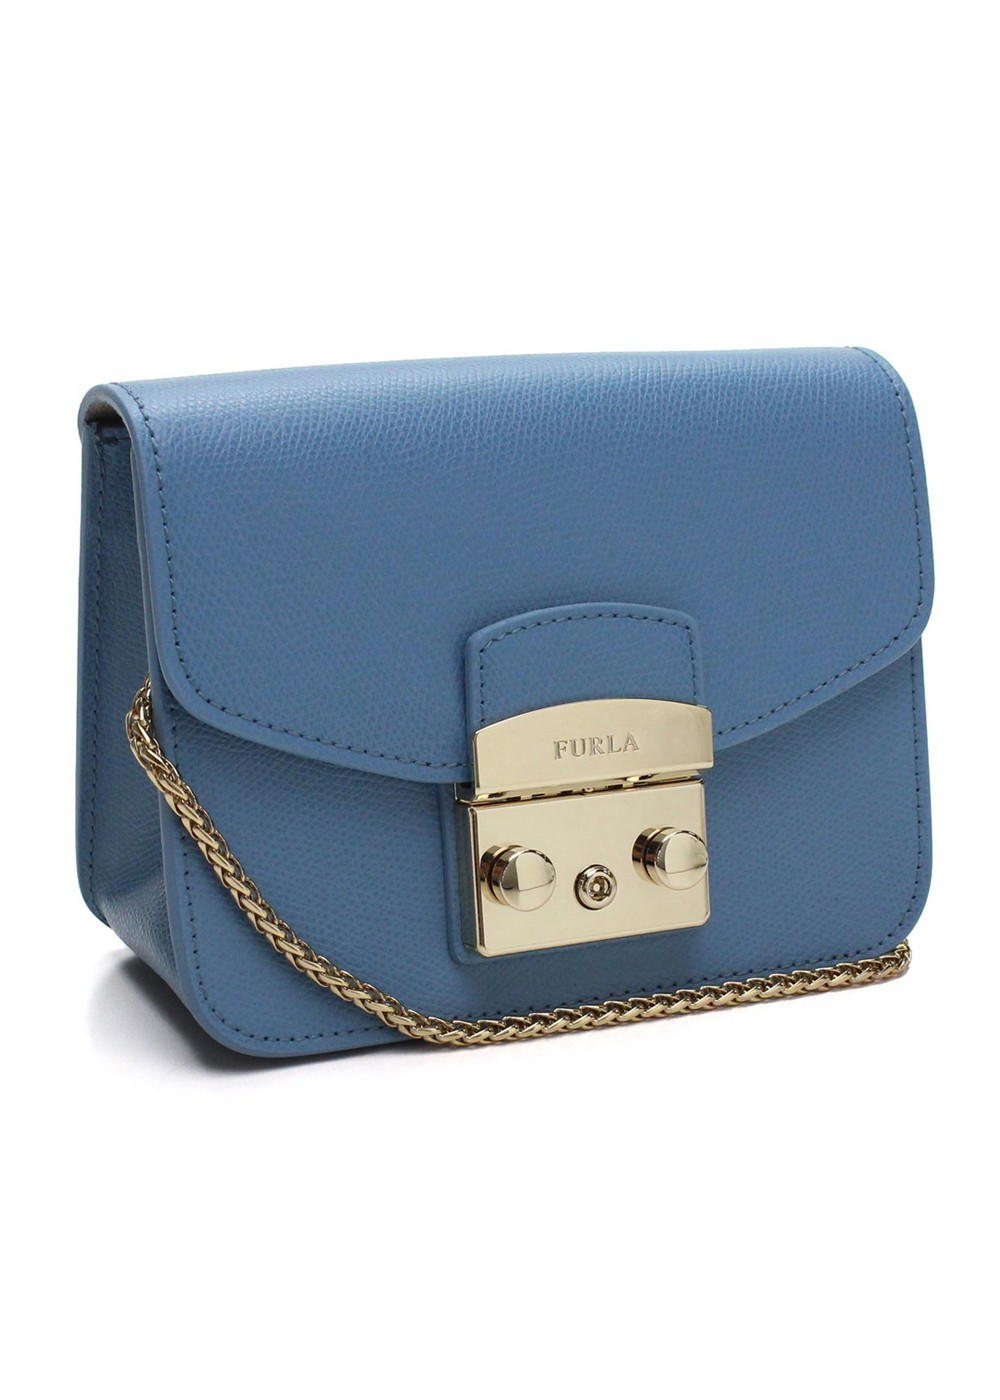 【最大47%OFF】BGZ7 962520 ARE BBE VERONICA|VERONICA|ショルダーバッグ|FURLA(B)